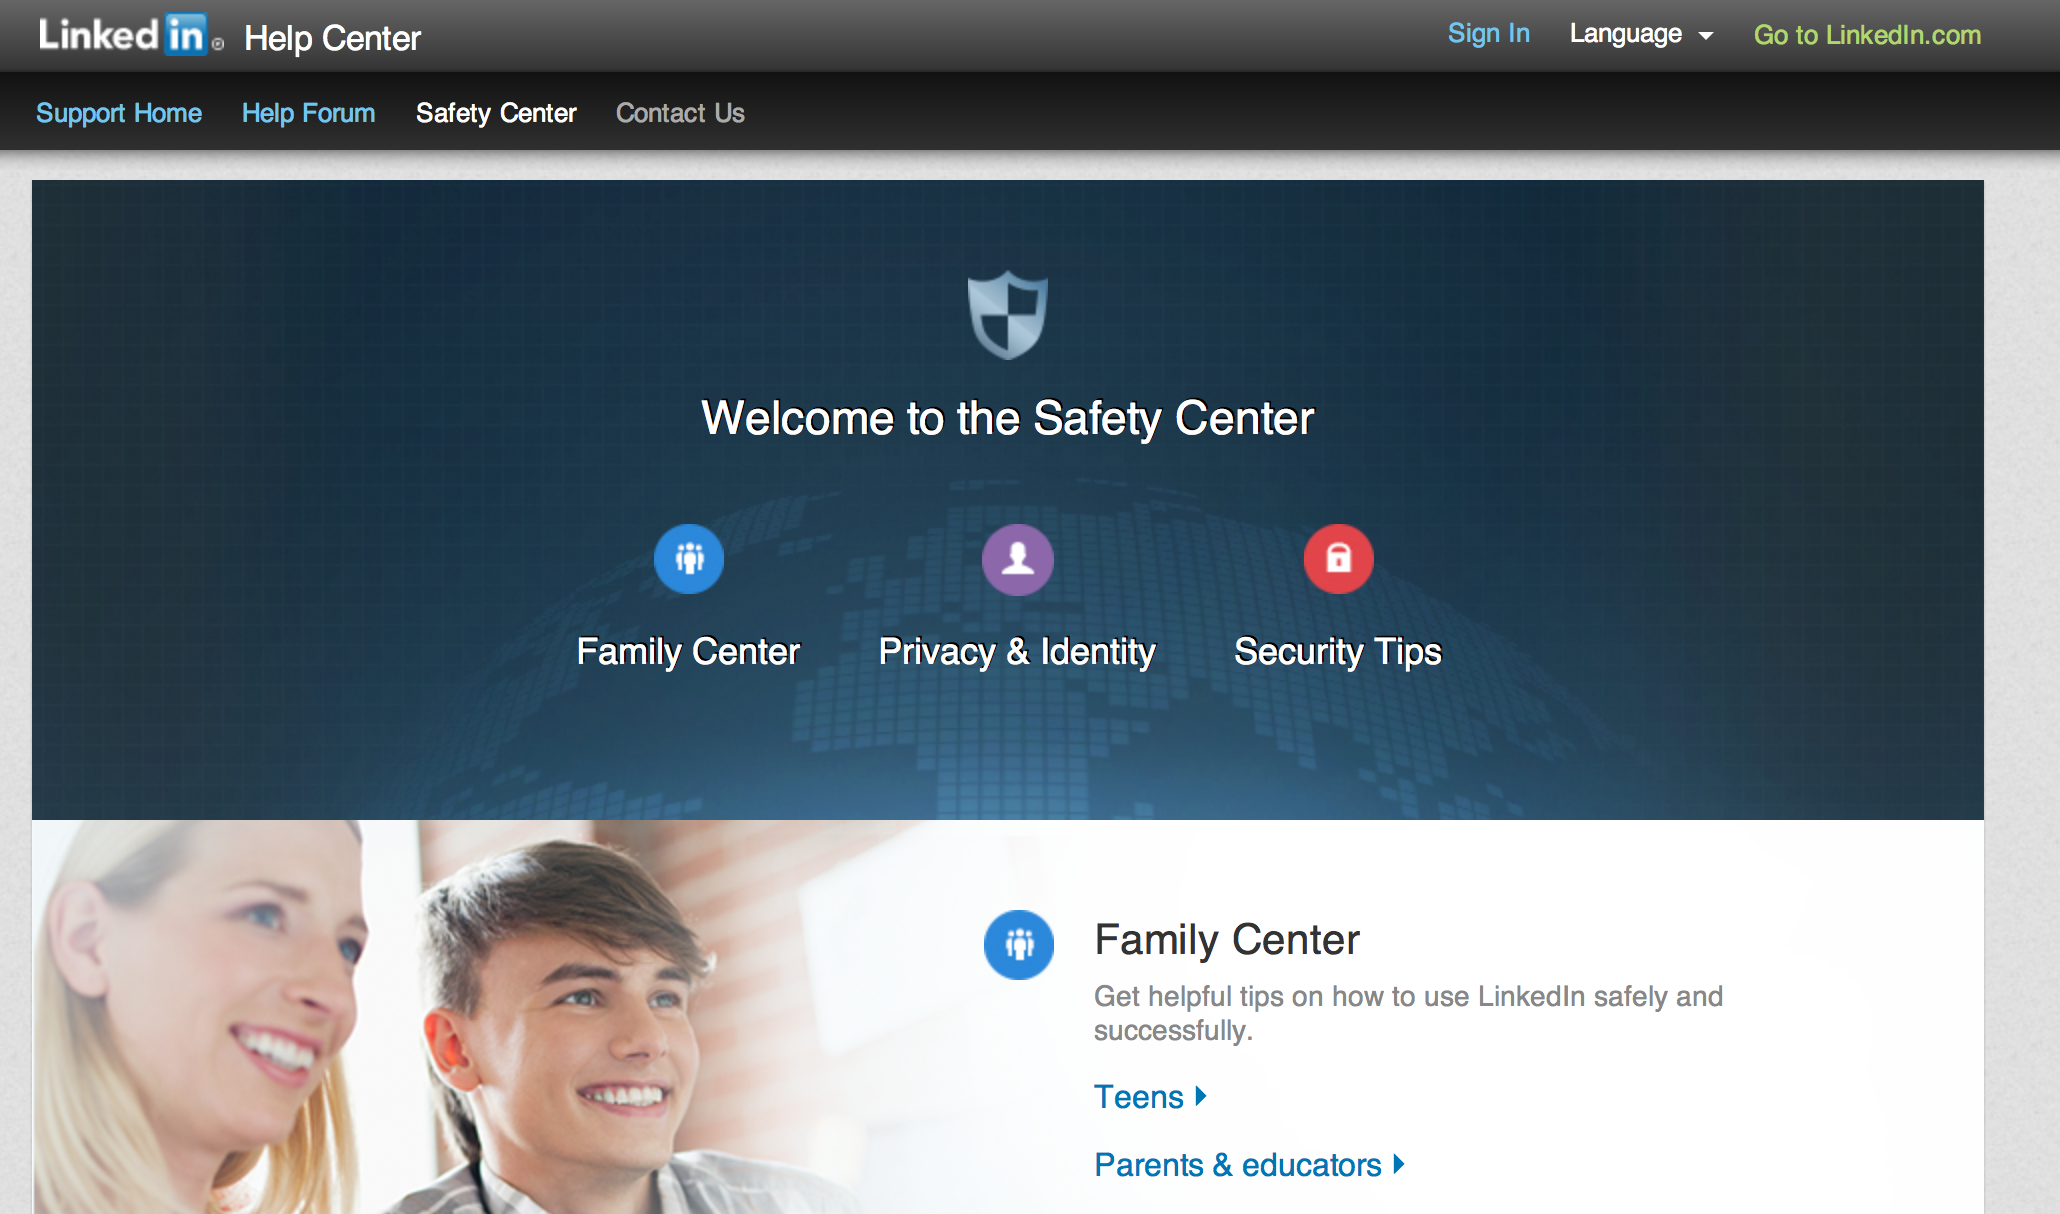 helpcenter_linkedin